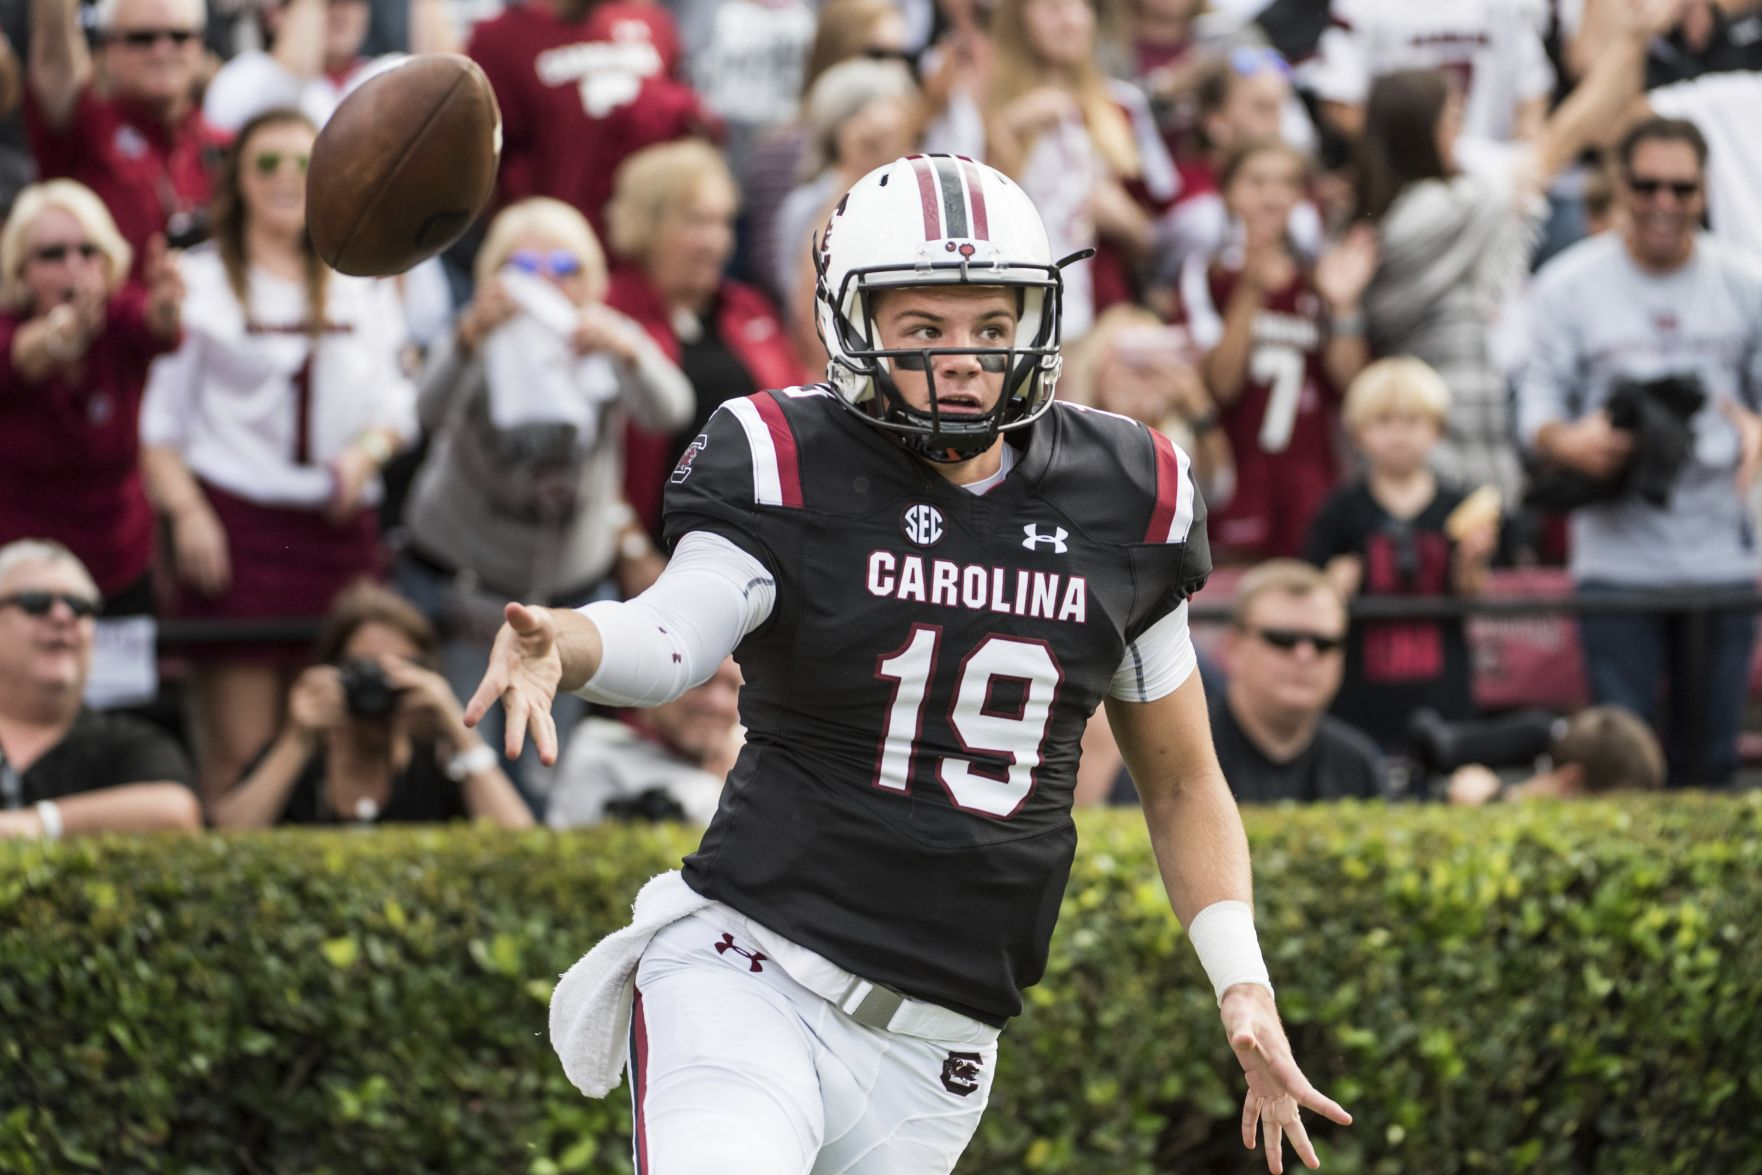 South Carolina football Top 10: Time for Jake Bentley to be great | Post and Courier